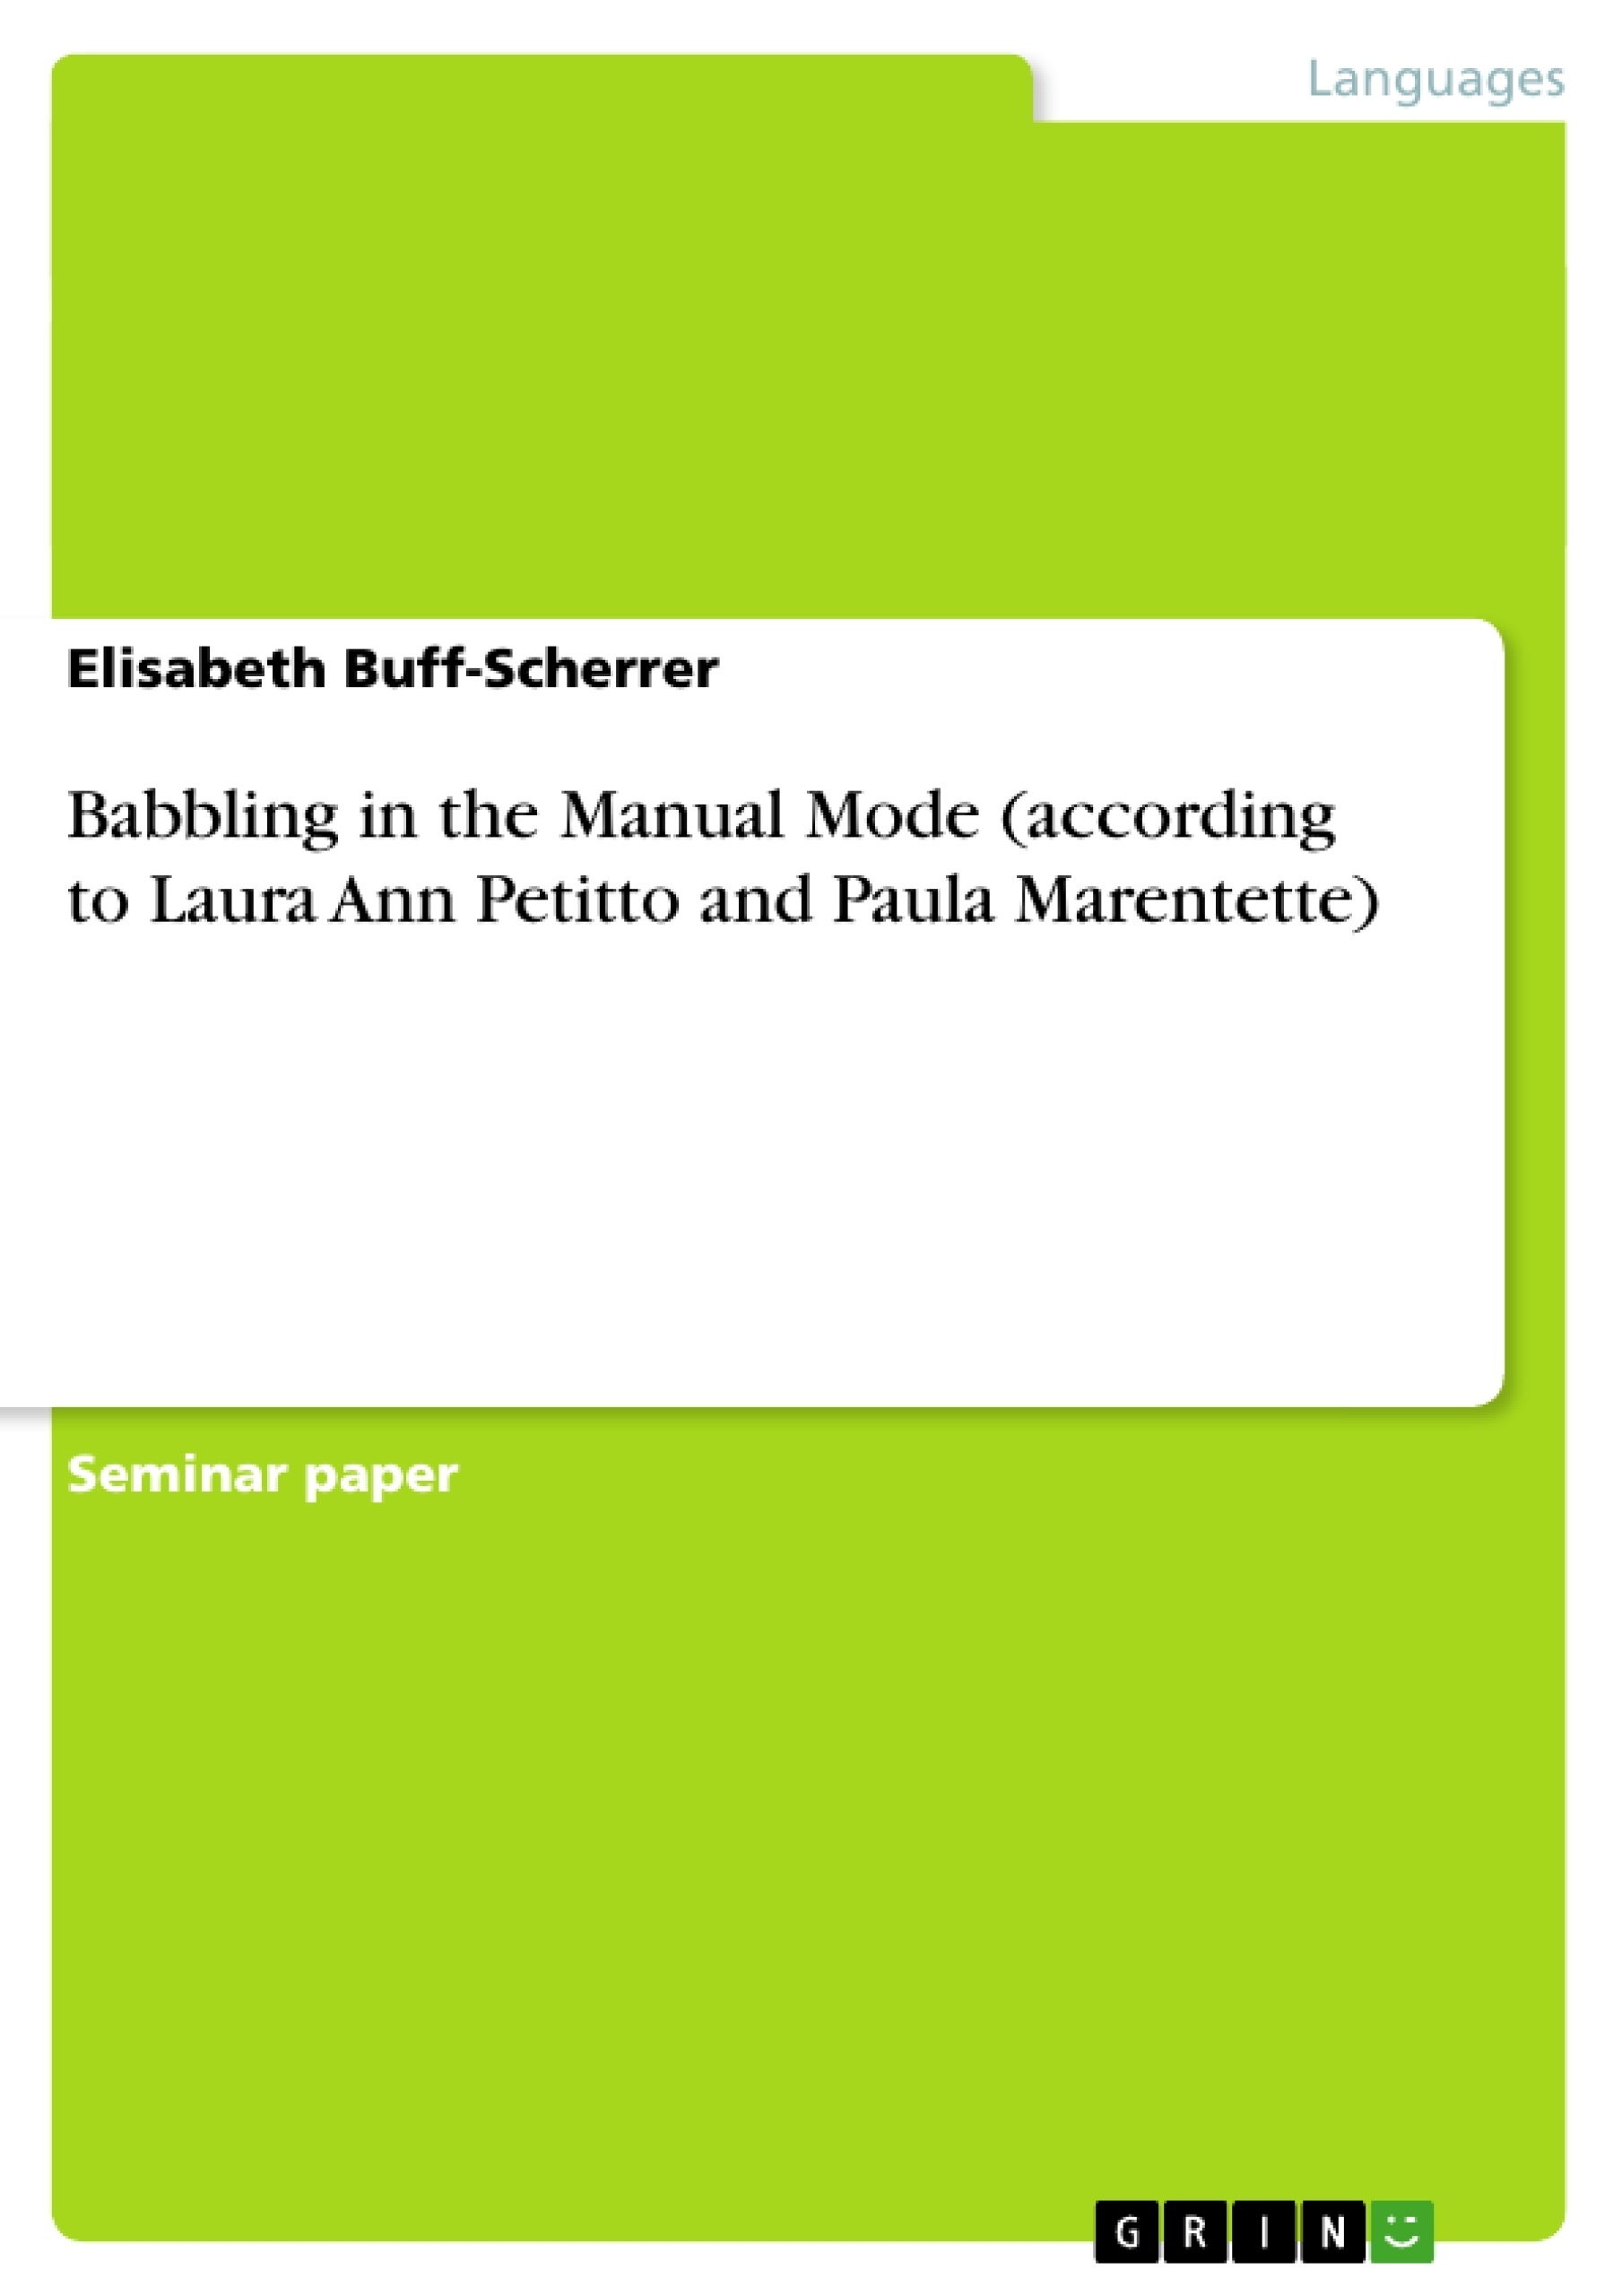 Titre: Babbling in the Manual Mode (according to Laura Ann Petitto and Paula Marentette)